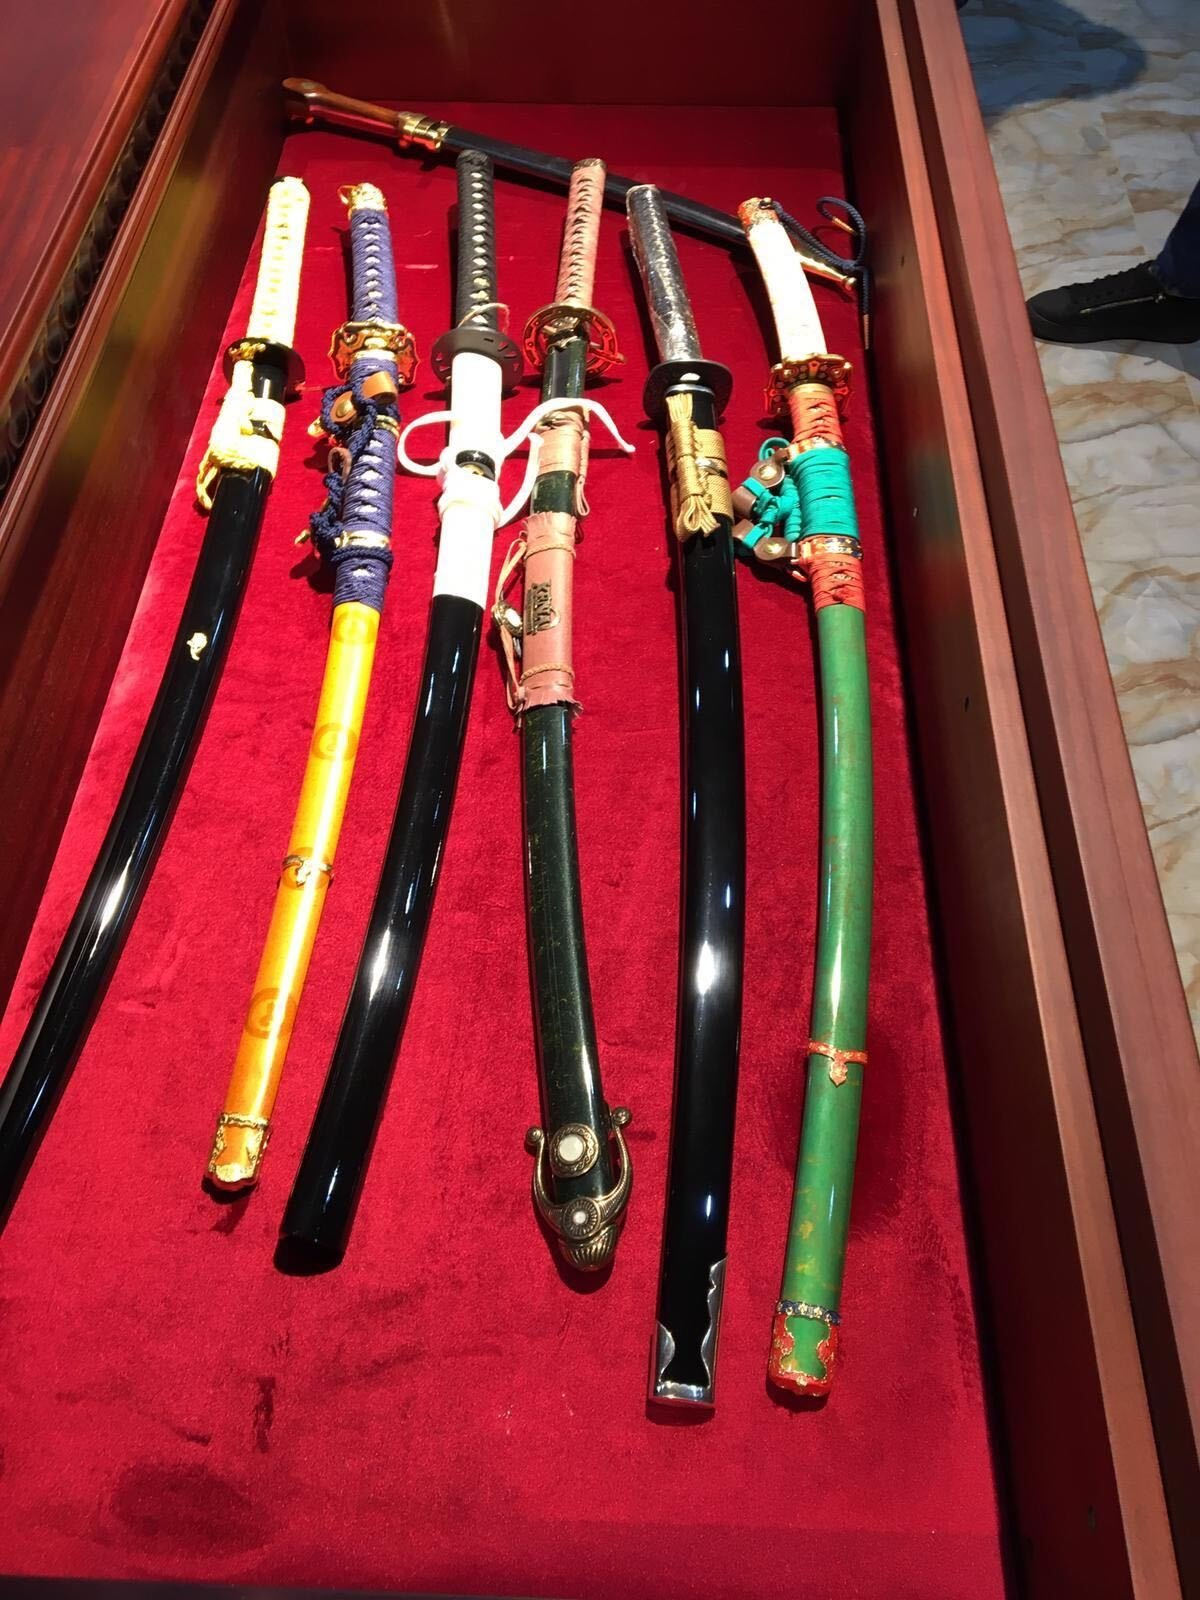 Swords seized from suspects. (Courtesy of the Interior Ministry)